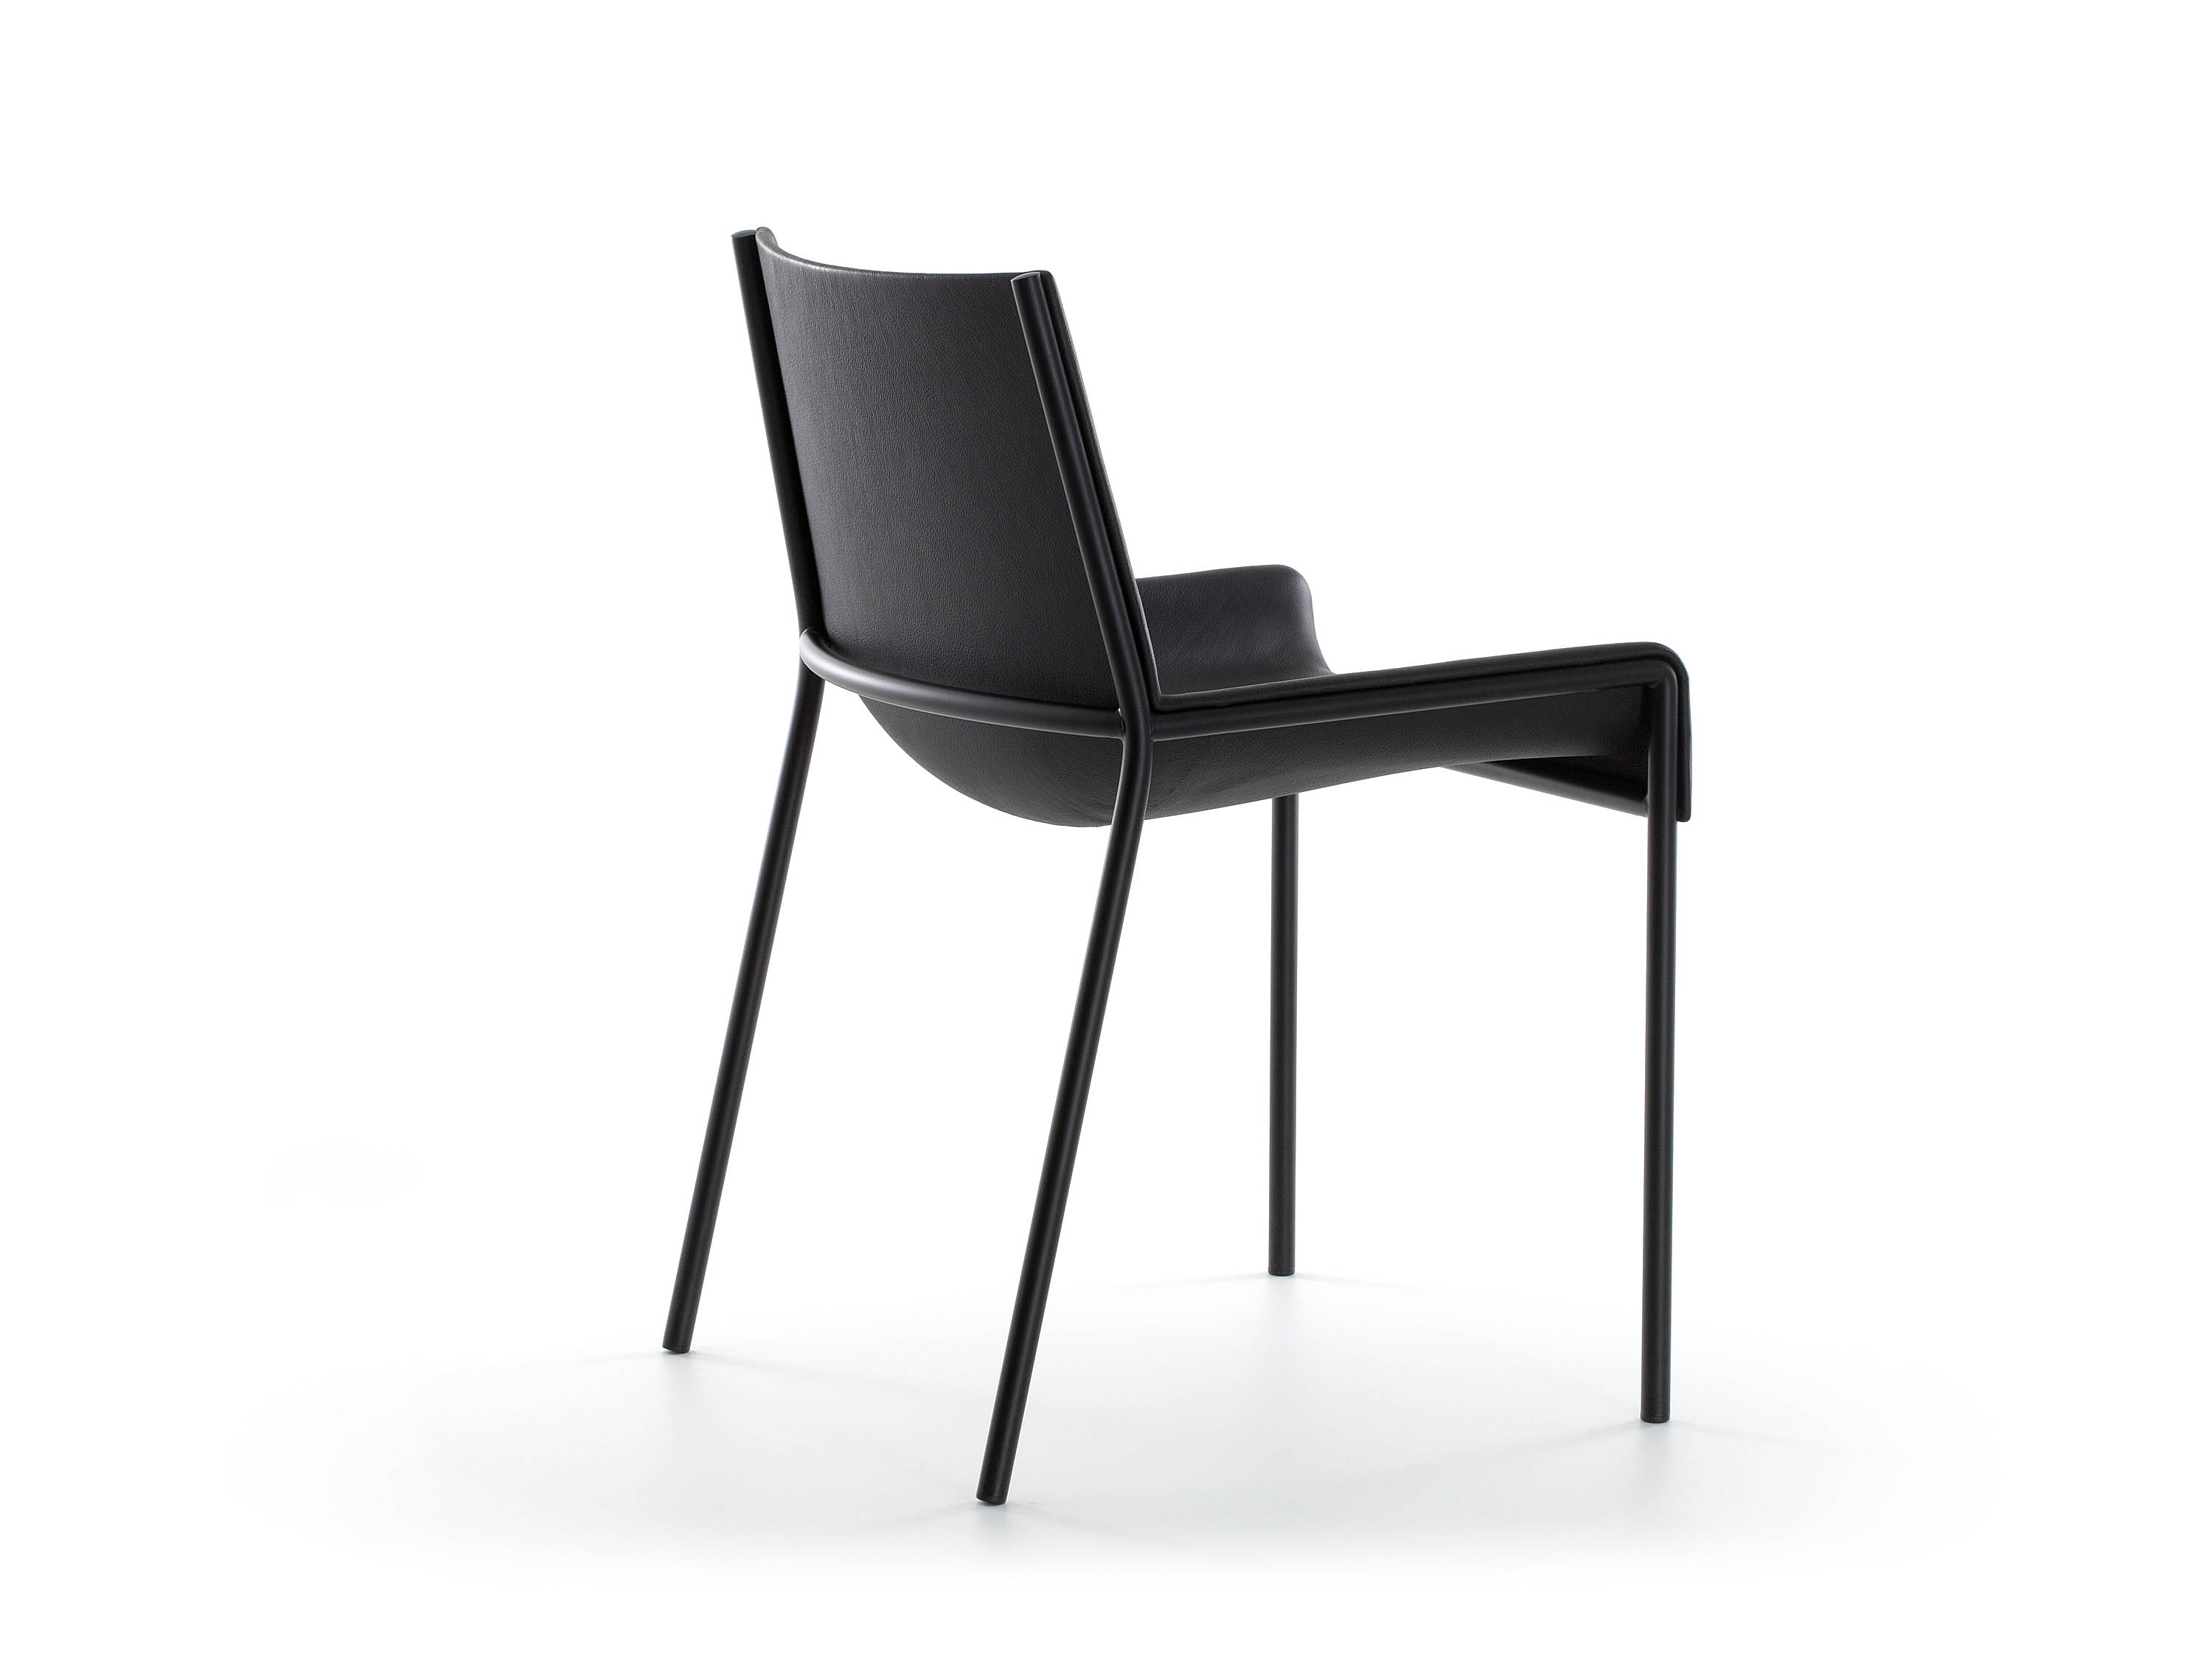 Porro spa products collections h chair for Chaise ingolf